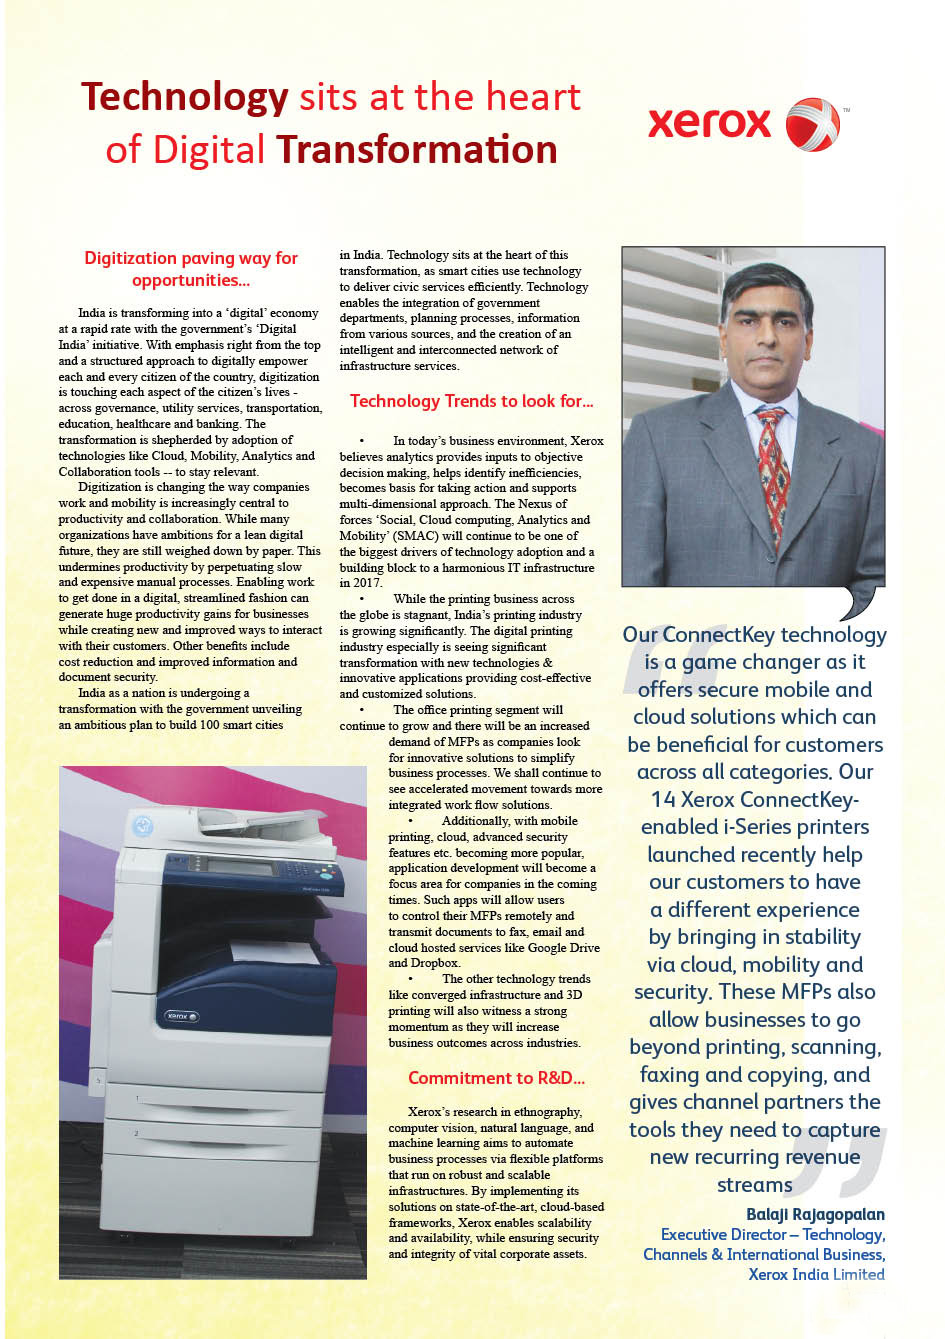 XEROX INDIA PVT. LTD. : Technology sits at the heart of Digital Transformation